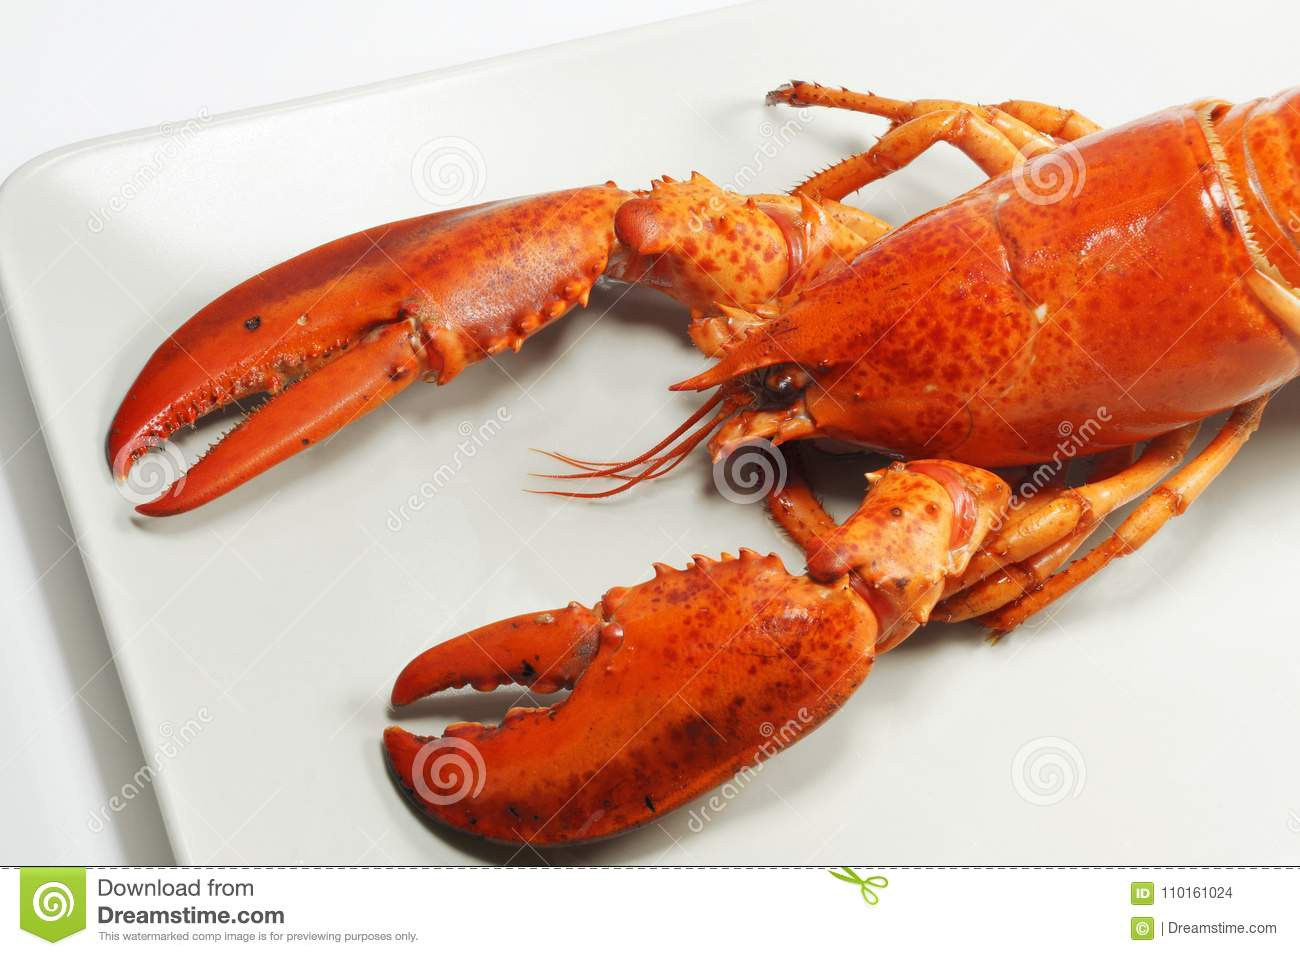 Fresh american lobster, whole silhouette on a light background